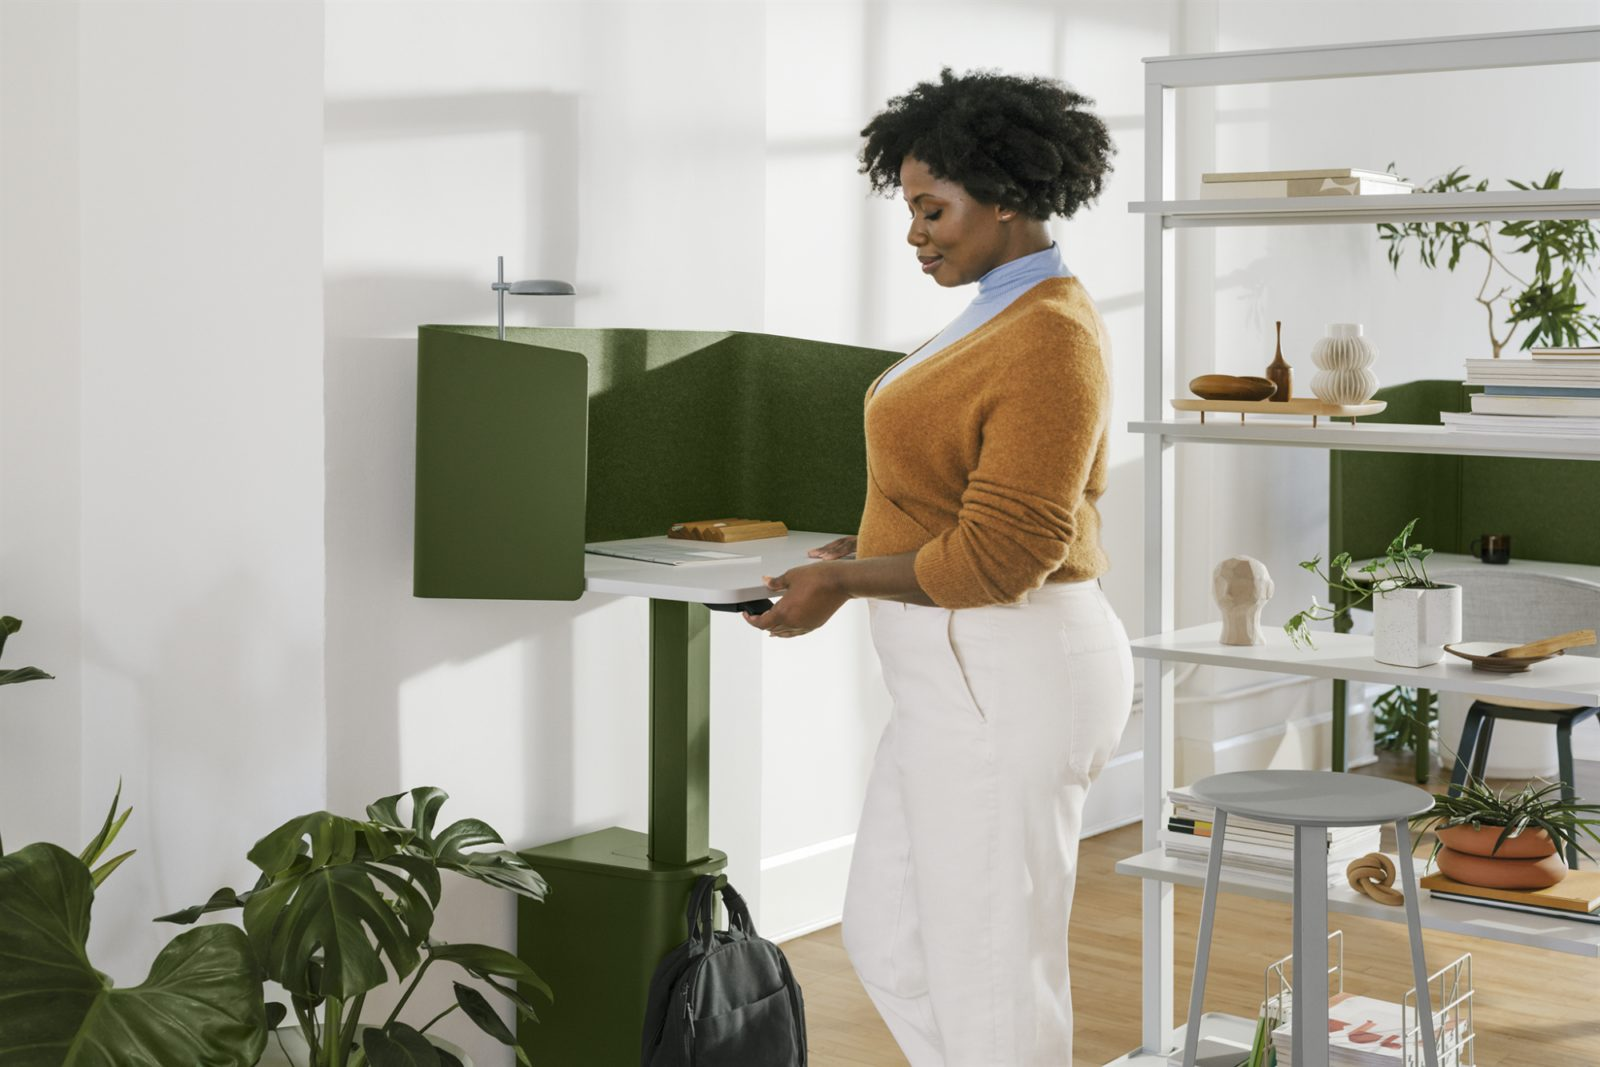 A person stands in front of a green OE1 Micropack adjusting the height of the work surface.